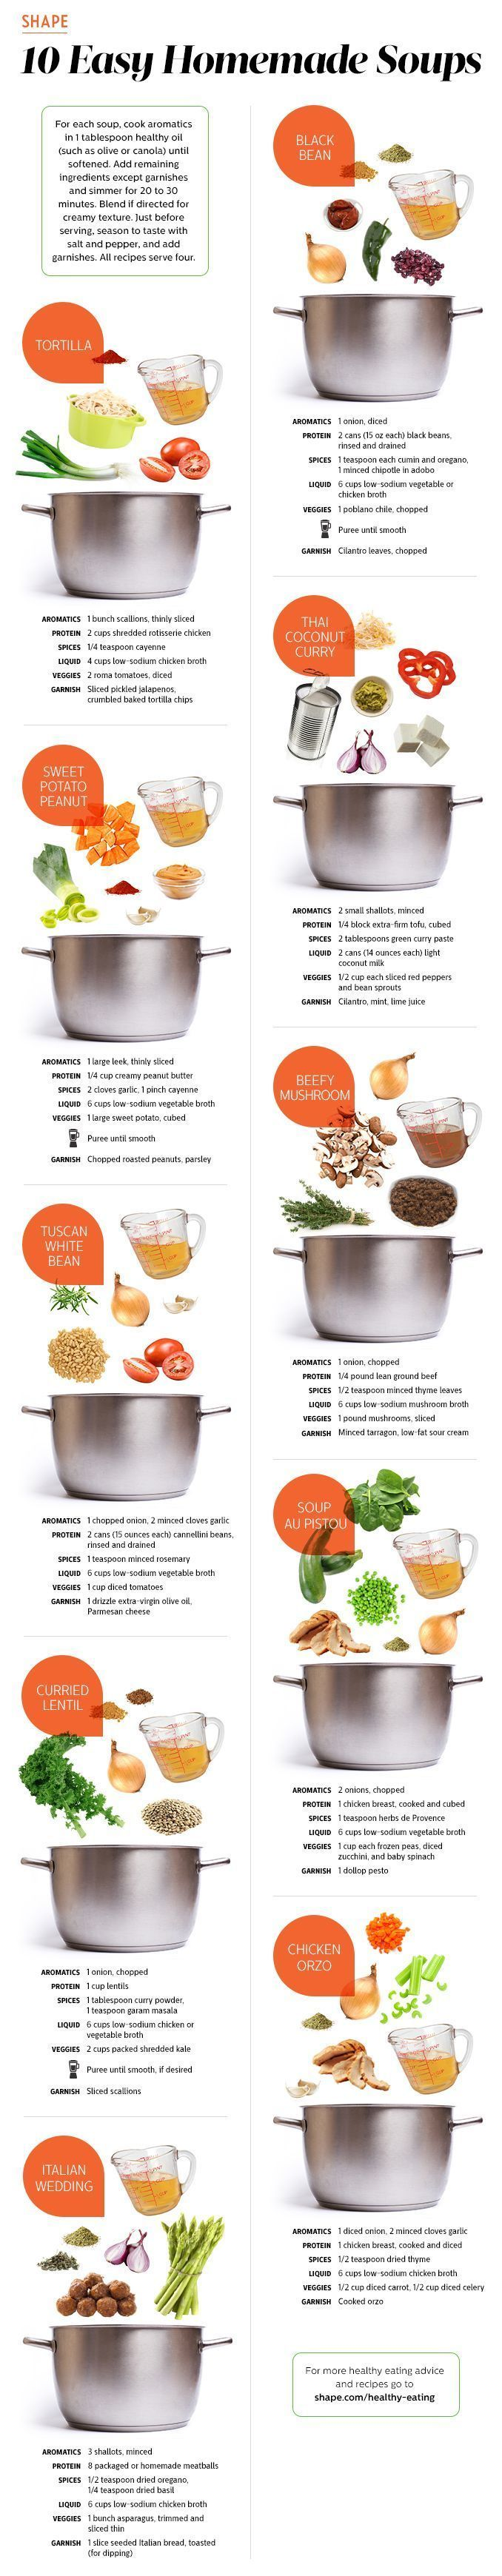 homemade soup #soup #recipes #easy #healthy #recipe #lunch